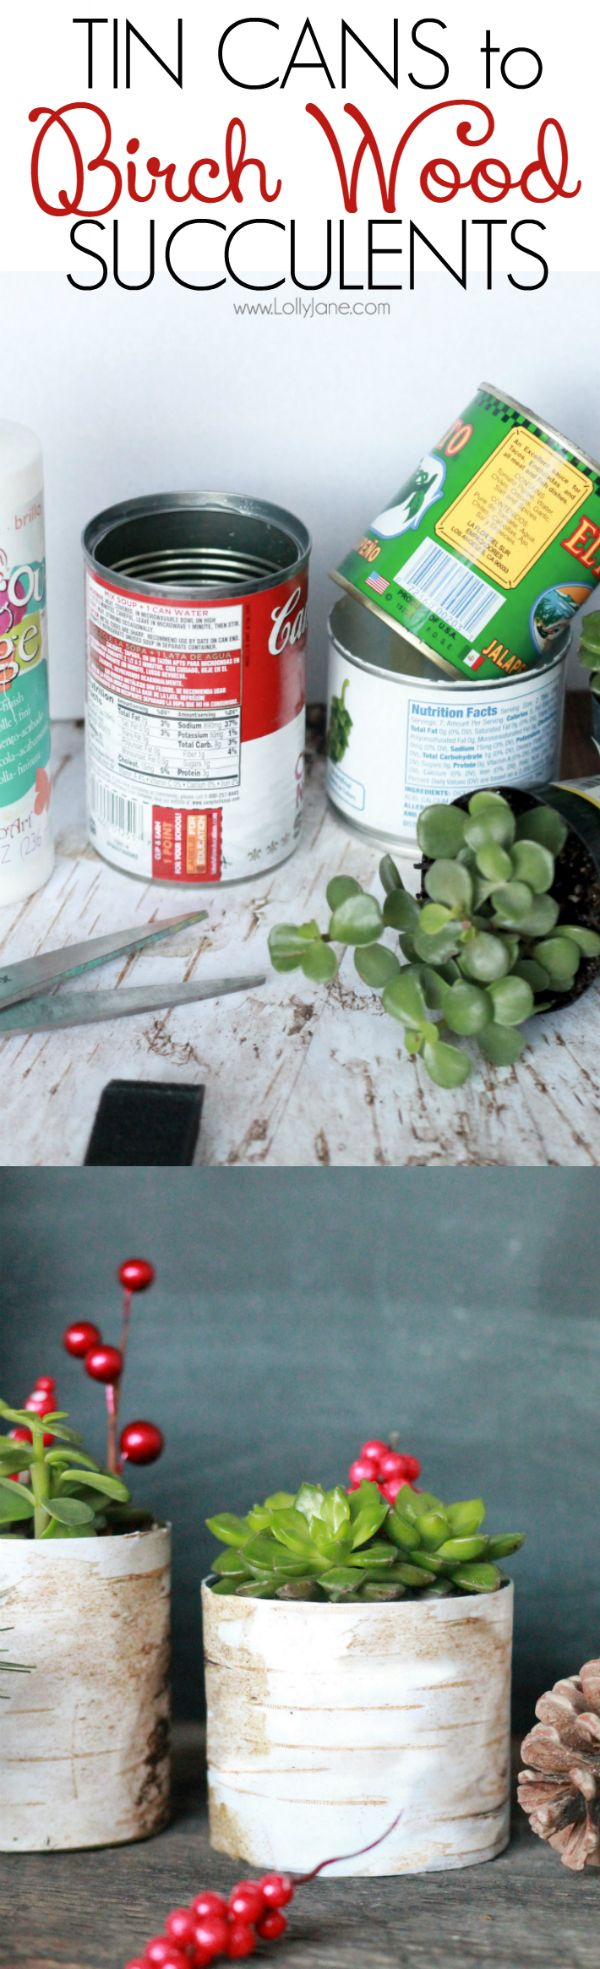 Upcycle tin cans into pretty succulent planters. | Easy birch wood tin can planter. Adorable fall decor, Thanksgiving table setting ideas or Christmas decor.